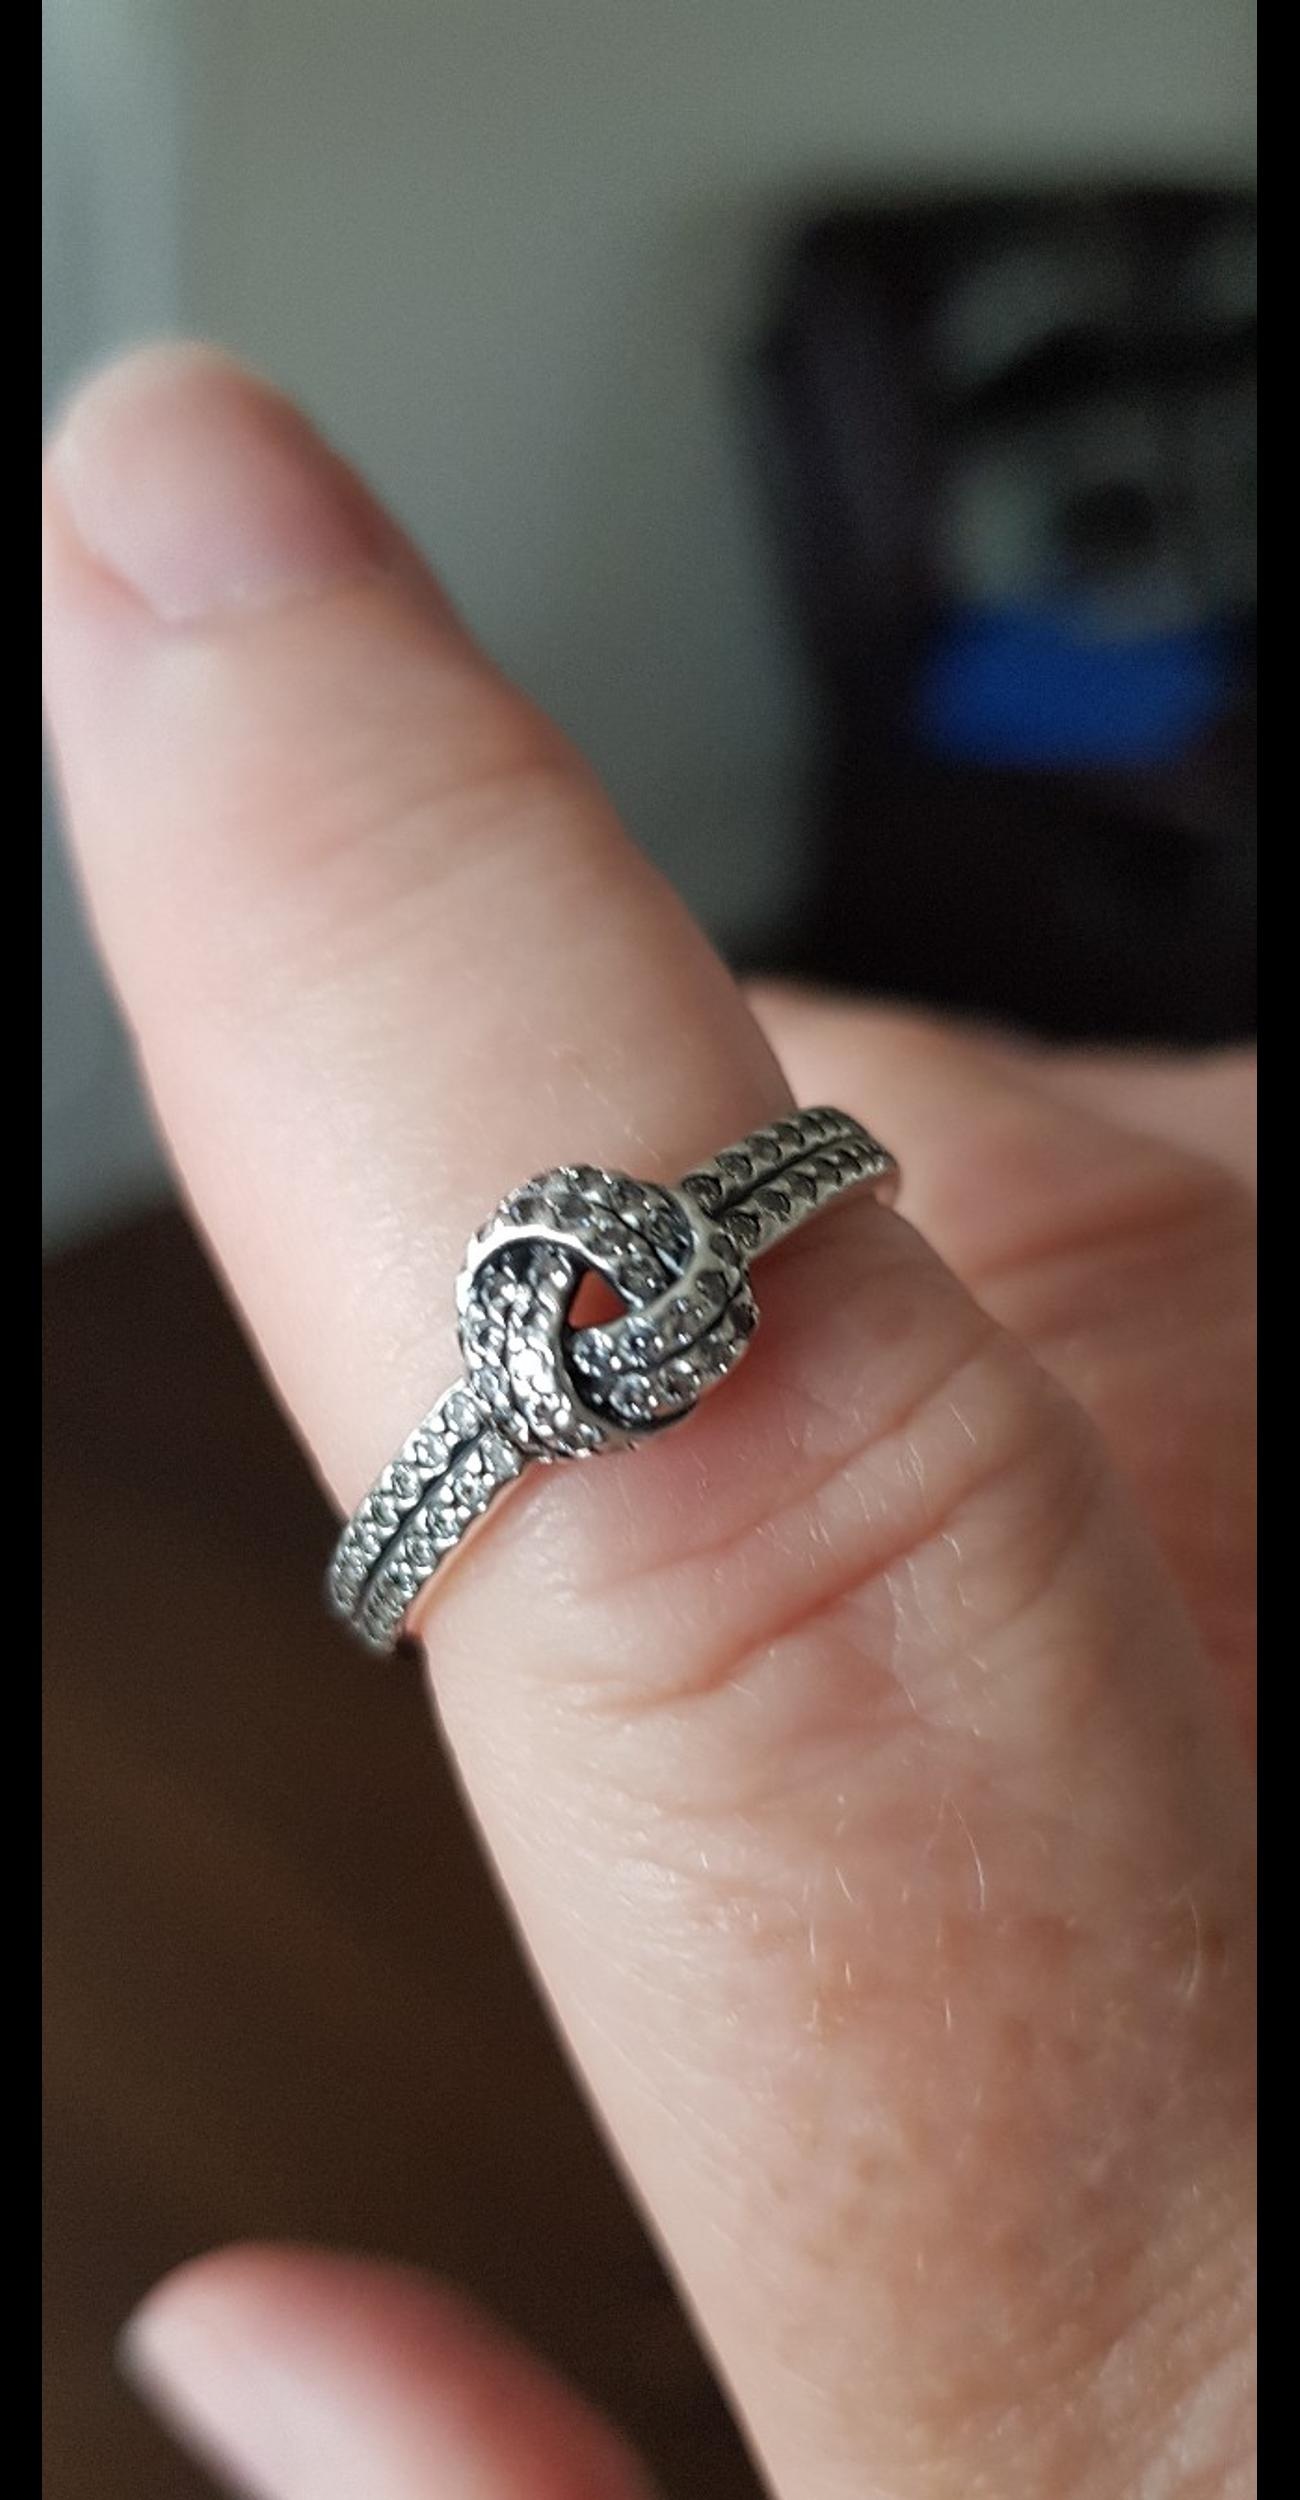 Pandora Love Knot Ring Size 60 In Bd17 Bradford For 35 00 For Sale Shpock